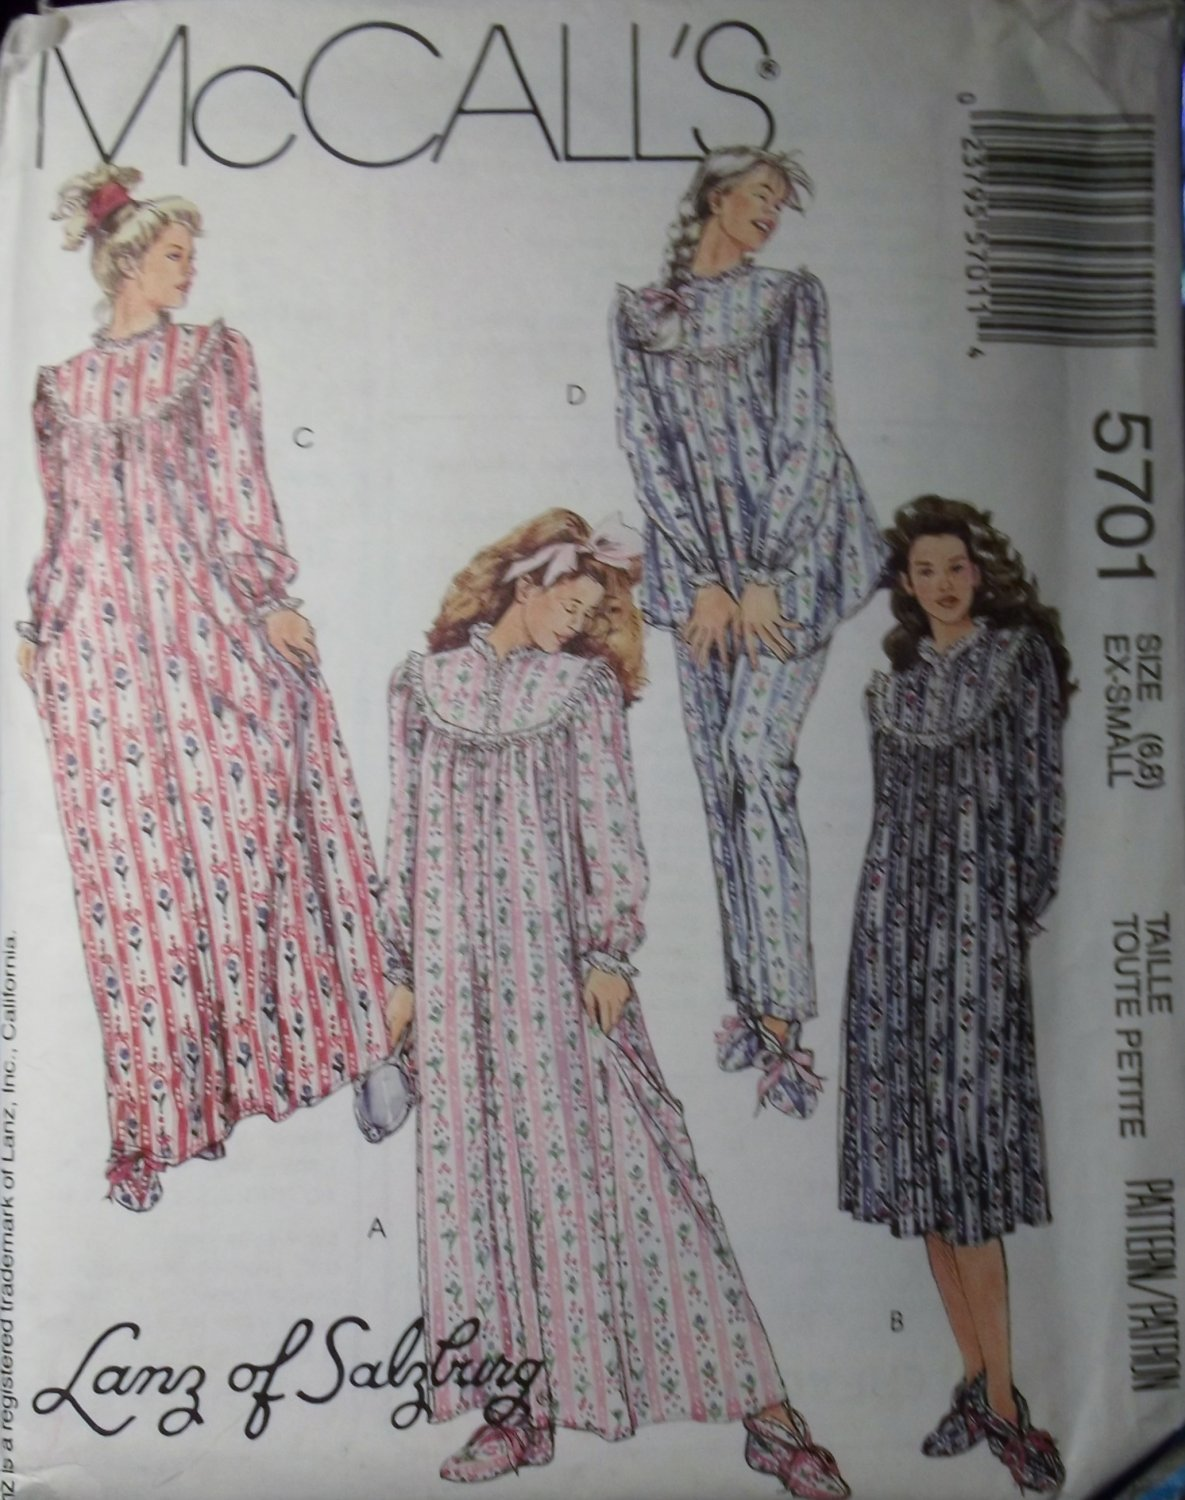 McCalls 5701  by Lanz of Salzburg pattern , Misses nightgown, pajama booties, size 6 8, UNCUT